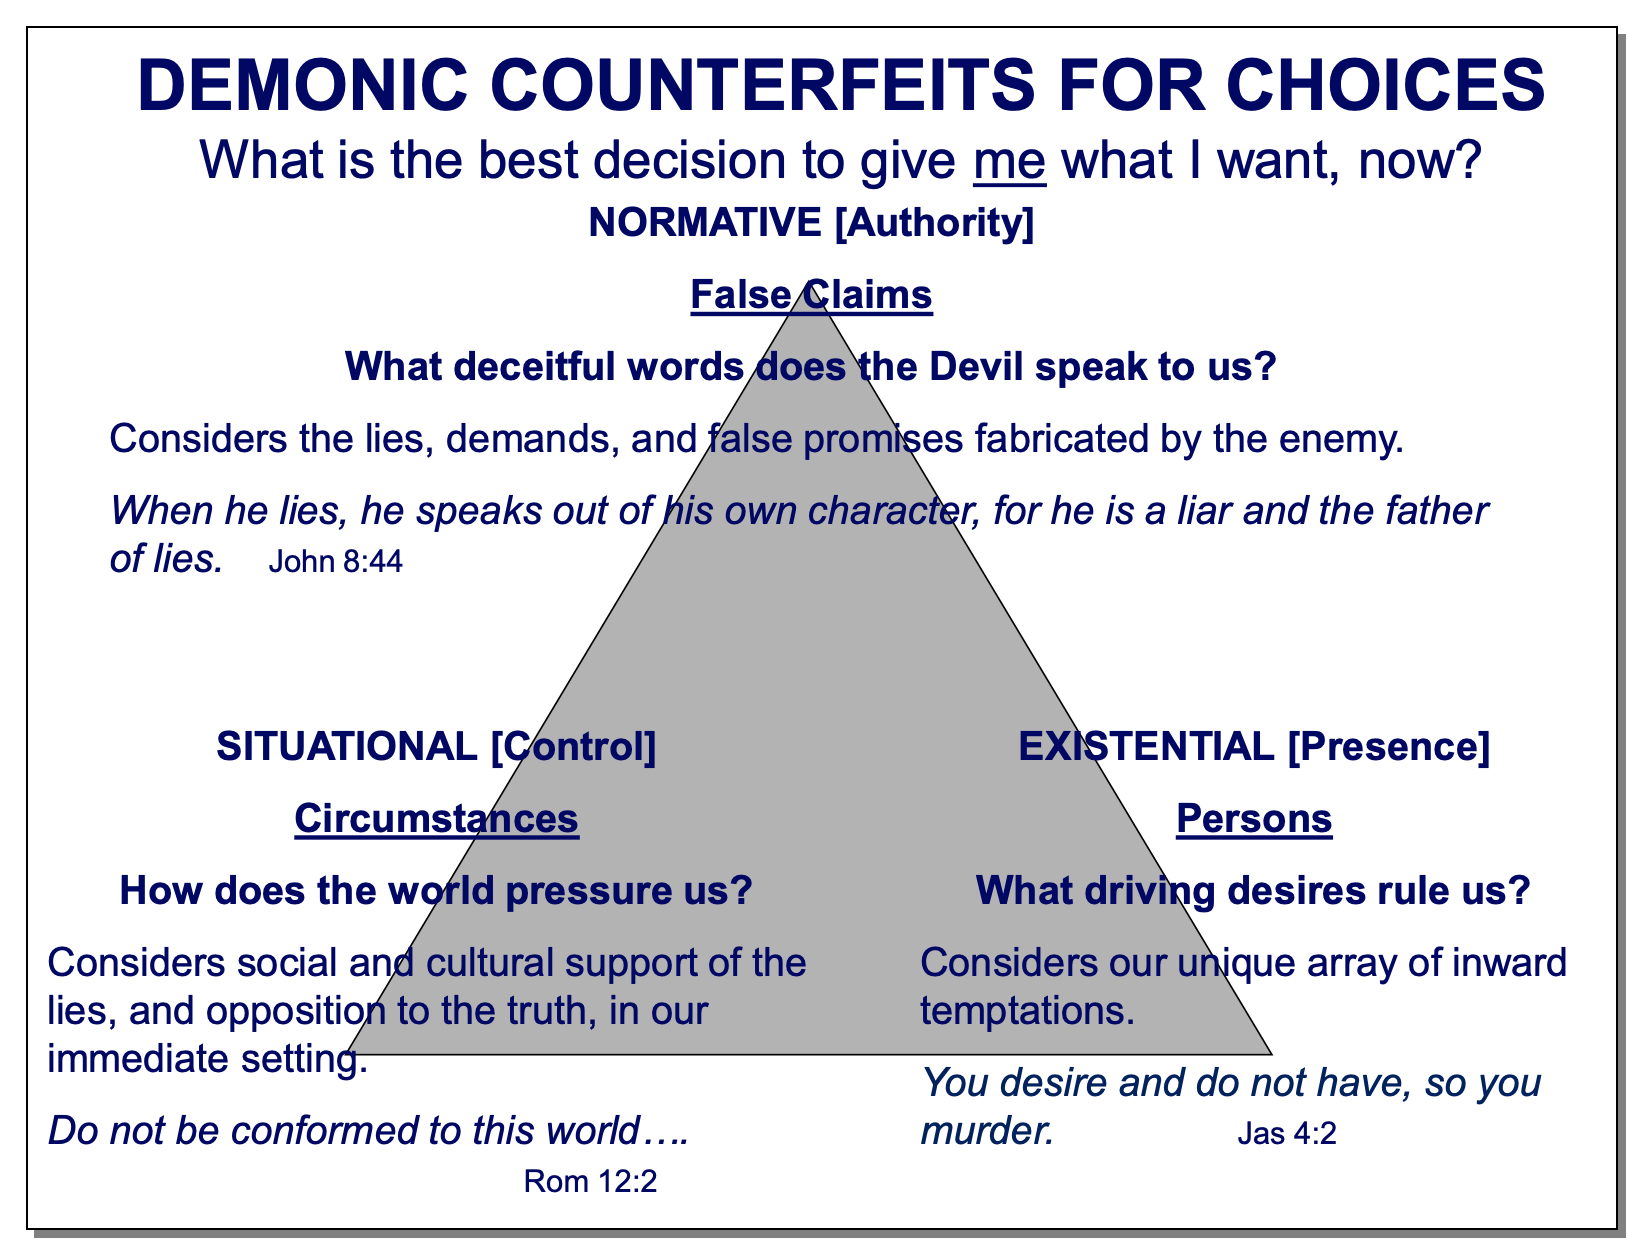 Demonic Counterfeits for Choices